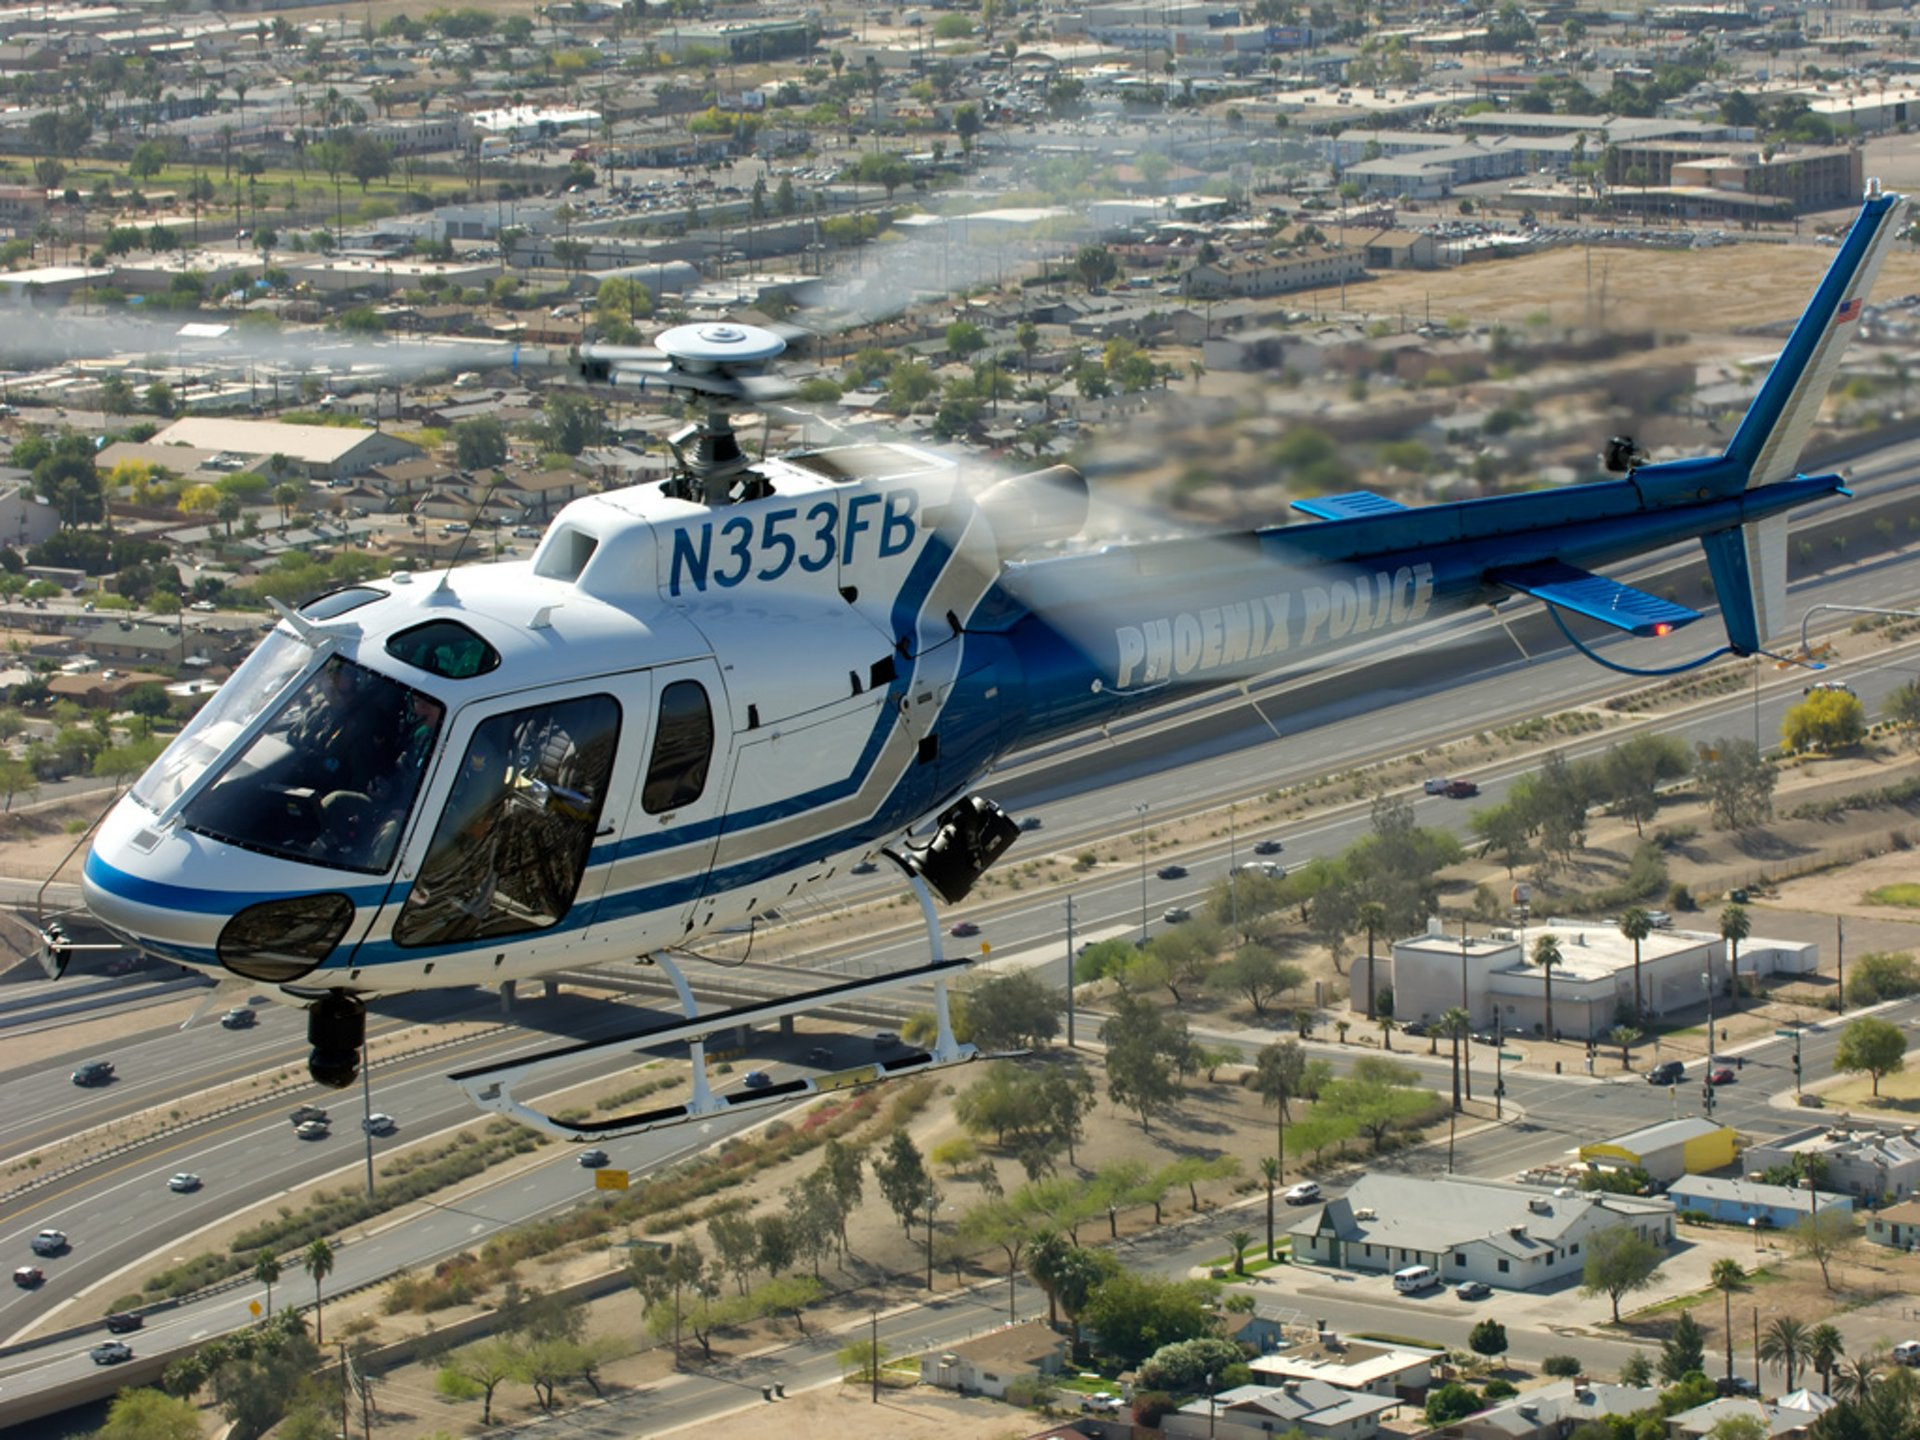 The Phoenix Police Department has signed a new order to upgrade its airborne law enforcement helicopter fleet with five new H125 helicopters.